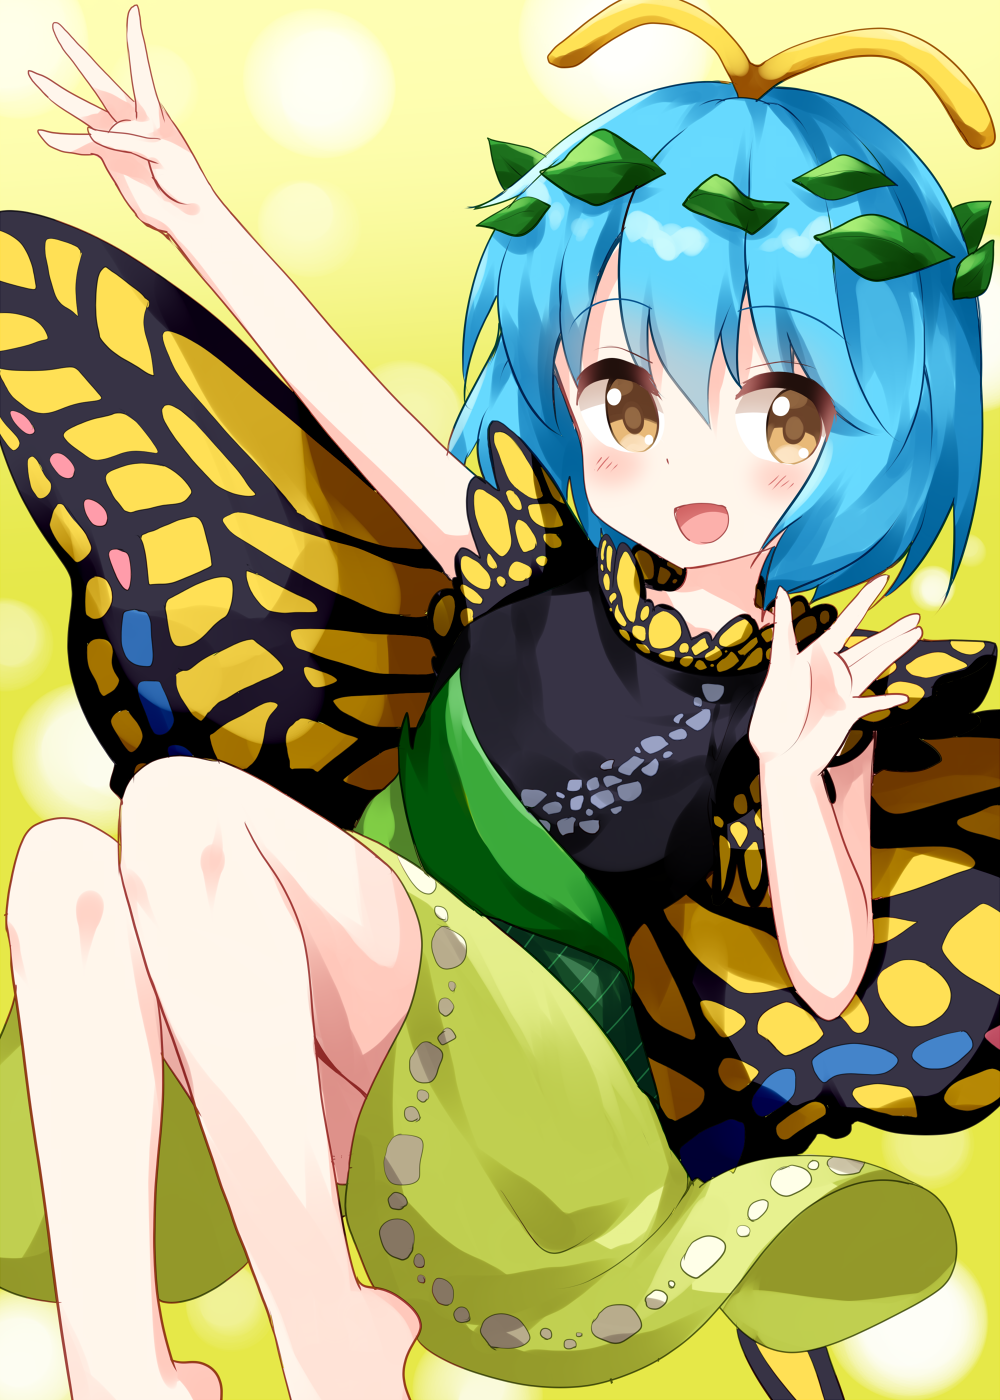 1girl antennae bangs barefoot black_dress blue_hair butterfly_wings dress eternity_larva eyebrows_visible_through_hair green_dress green_skirt highres leaf leaf_on_head looking_at_viewer multicolored multicolored_clothes multicolored_dress open_mouth ruu_(tksymkw) short_hair simple_background skirt sleeveless sleeveless_dress smile solo touhou two-tone_dress wings yellow_background yellow_eyes yellow_wings